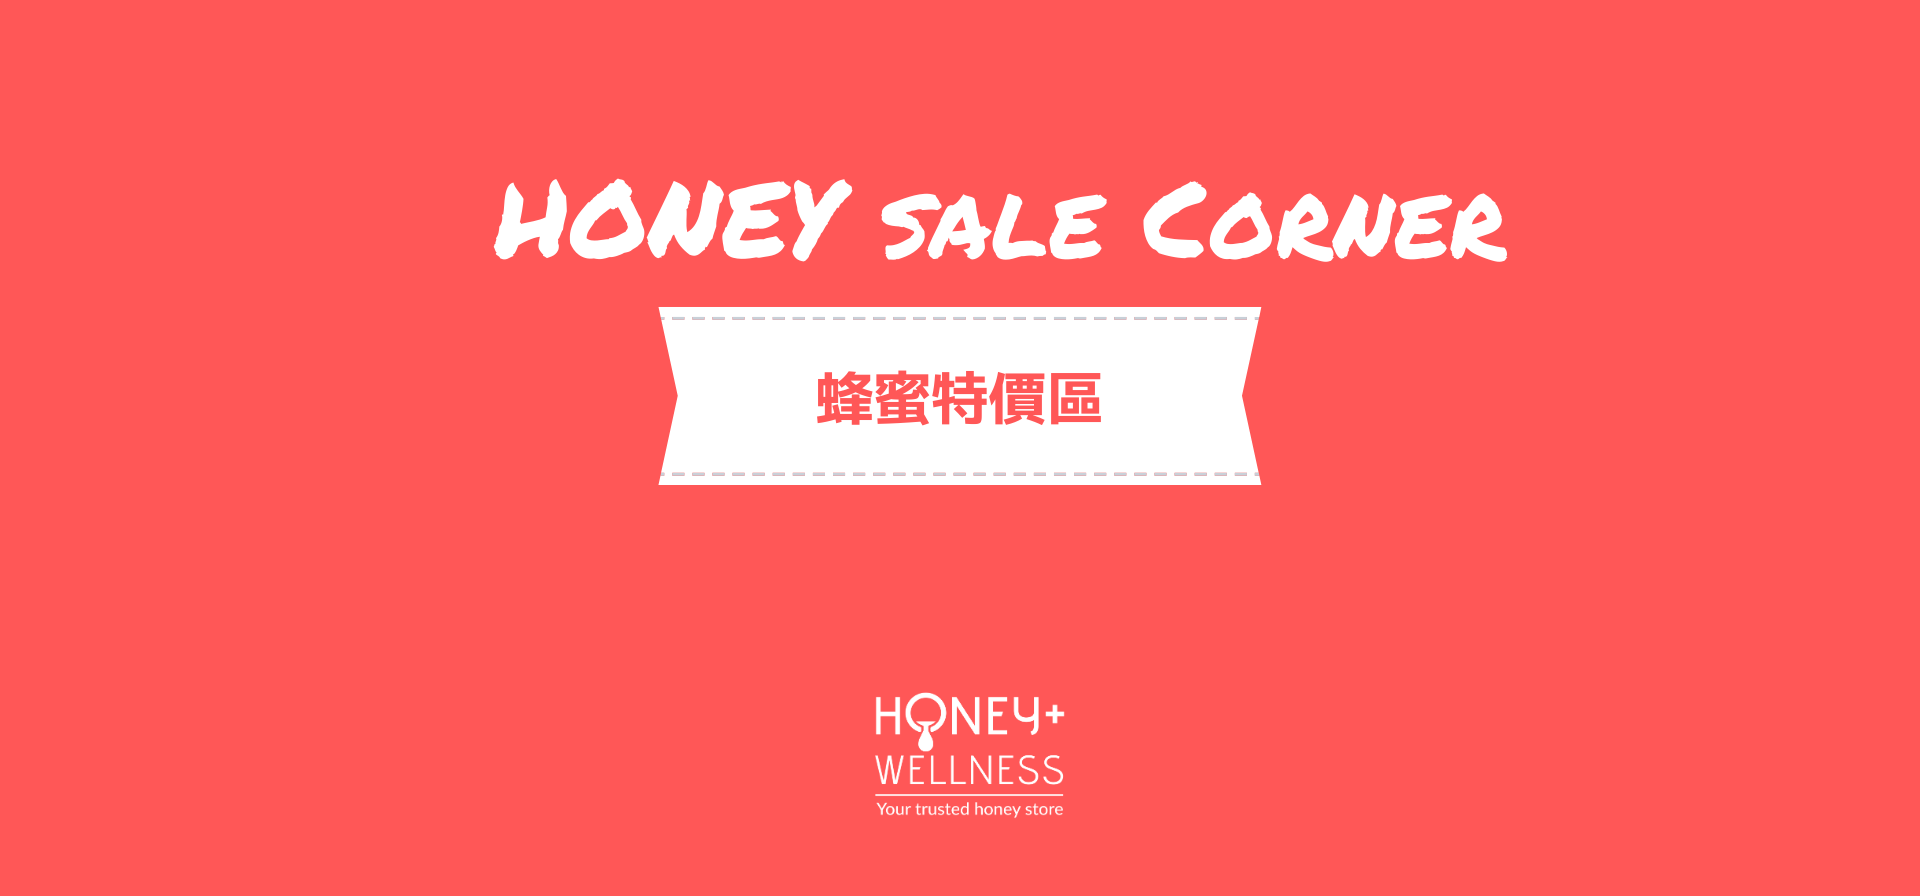 sales, discount, special offer, honey on sale, reduced price, coupon,優惠,蜂蜜,減價,特價,清貨,開倉